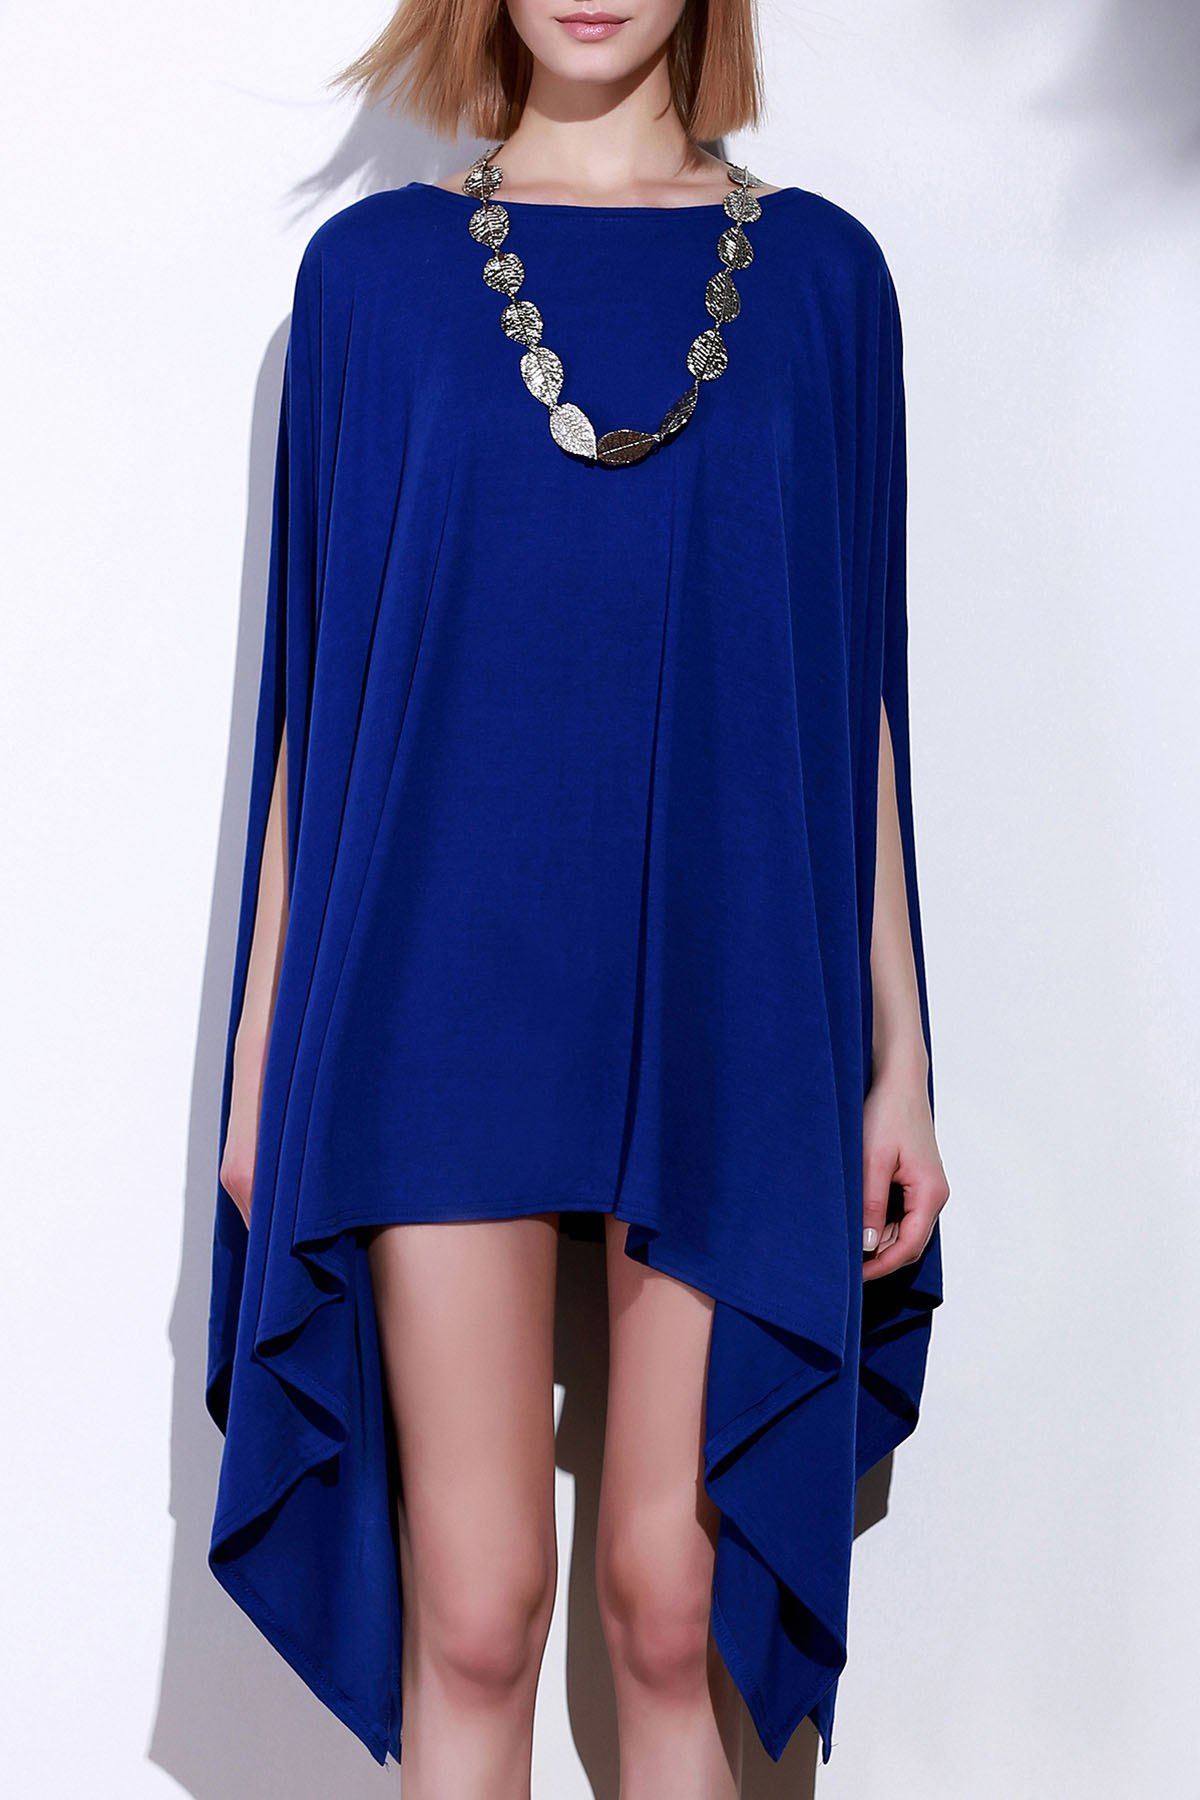 Handkerchief Plus Size Caped Top with Batwing Sleeve - BLUE 2XL